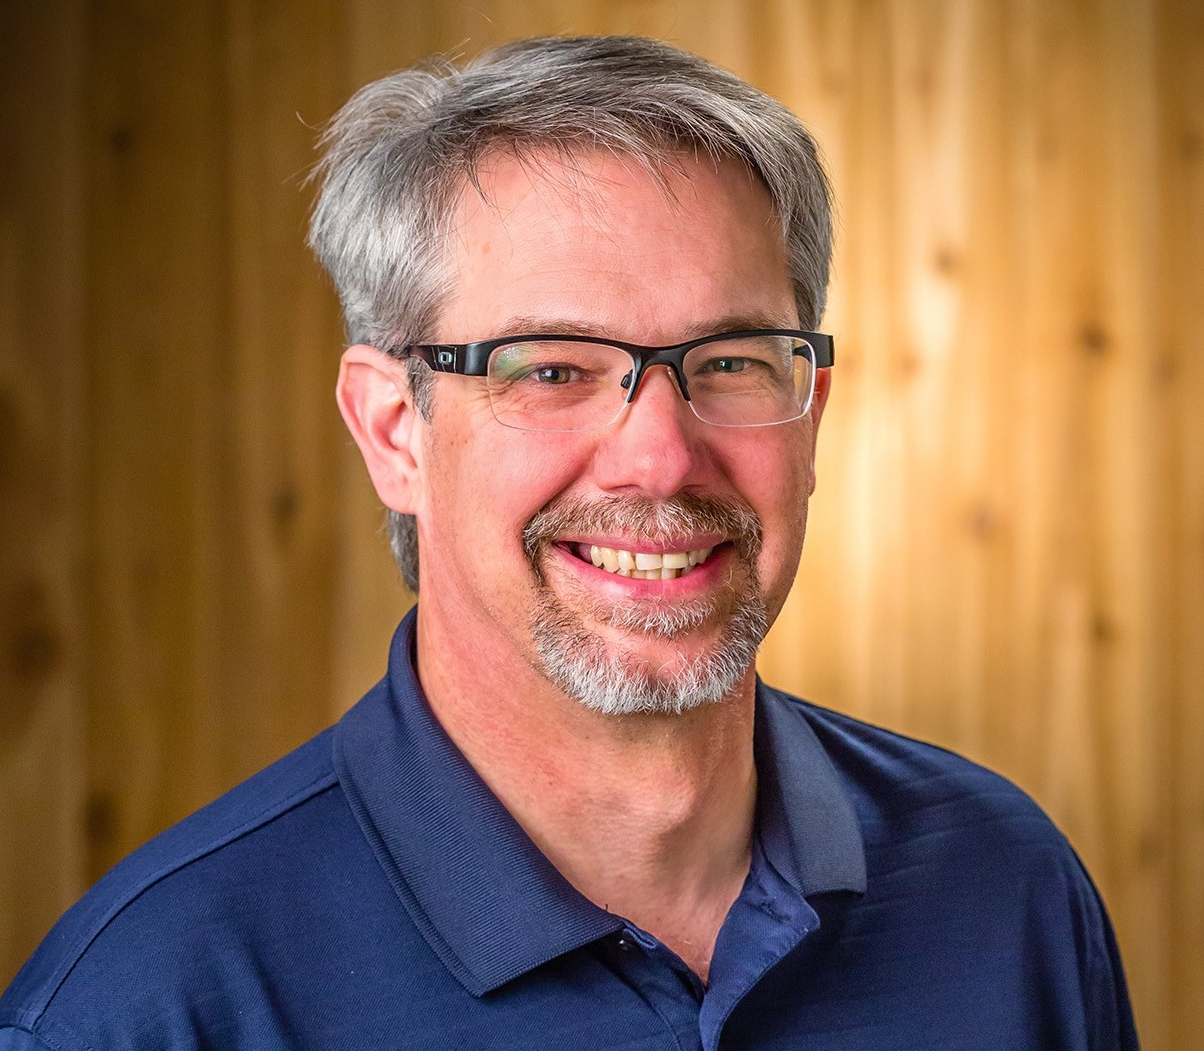 Rob Johnstone - Publisher of Woodworker's Journal and Director of Content Marketing at Rockler Press